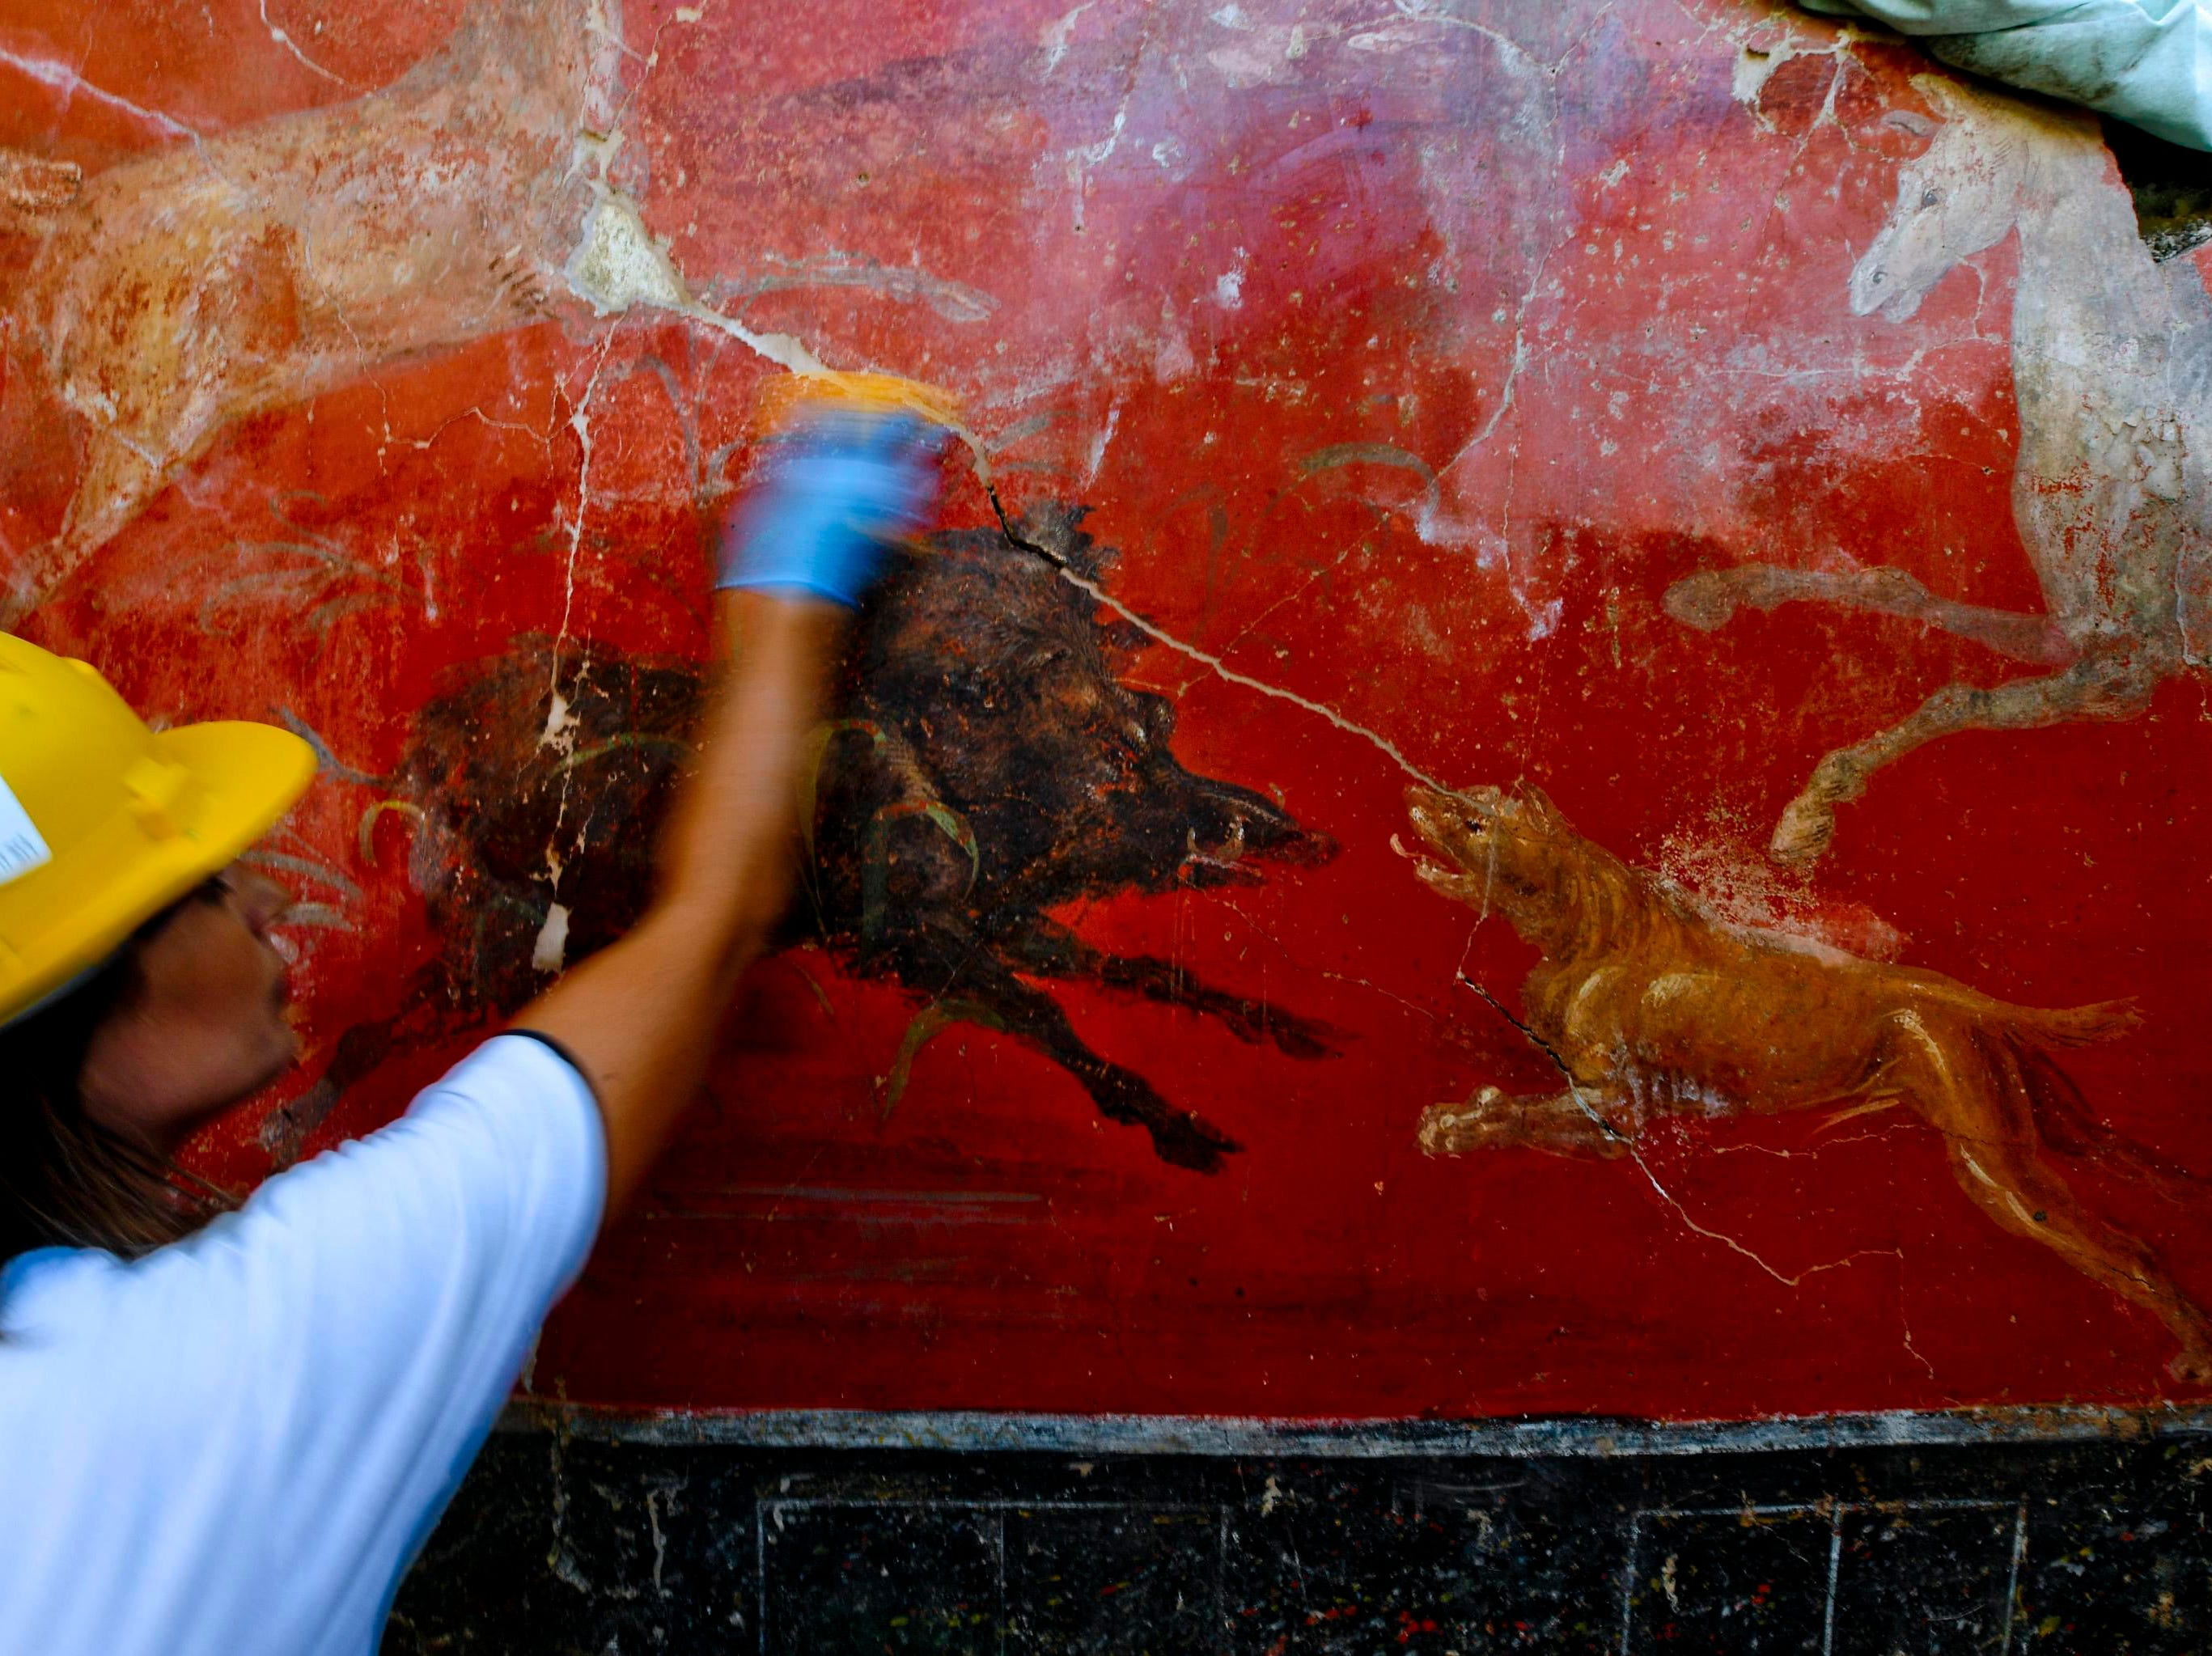 """An archeologist works on a fresco in a house discovered during excavation works in Pompeii, Italy, presented to journalists Friday, Oct. 5, 2018.  Archaeologists excavating near Porta Vesuvio, in an unexplored part of Pompeii, have discovered a richly painted house with an """"enchanted garden,"""" with incredibly intact frescos and a majestic lararium, a shrine to the guardian spirits, one of the largest ever discovered in the city buried when Mt. Vesuvius erupted in 79 AD."""